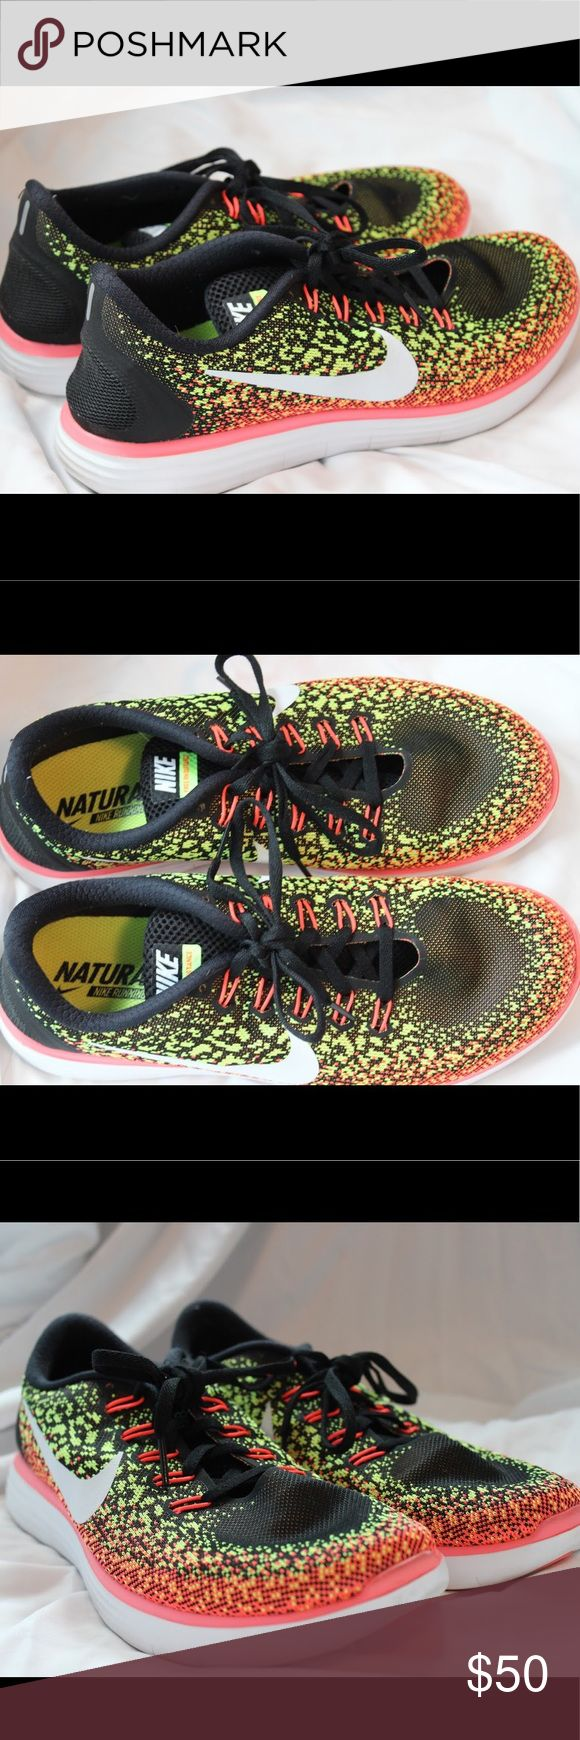 NIKE FREE RN DISTANCE WOMEN RUNNING SHOES Nike free RN distance running shoes. Only worn on treadmill three times, never outside. Super clean, look brand new. Bright and fun colorful pattern on black background. Size 10 US women. Nike Shoes Athletic Shoes